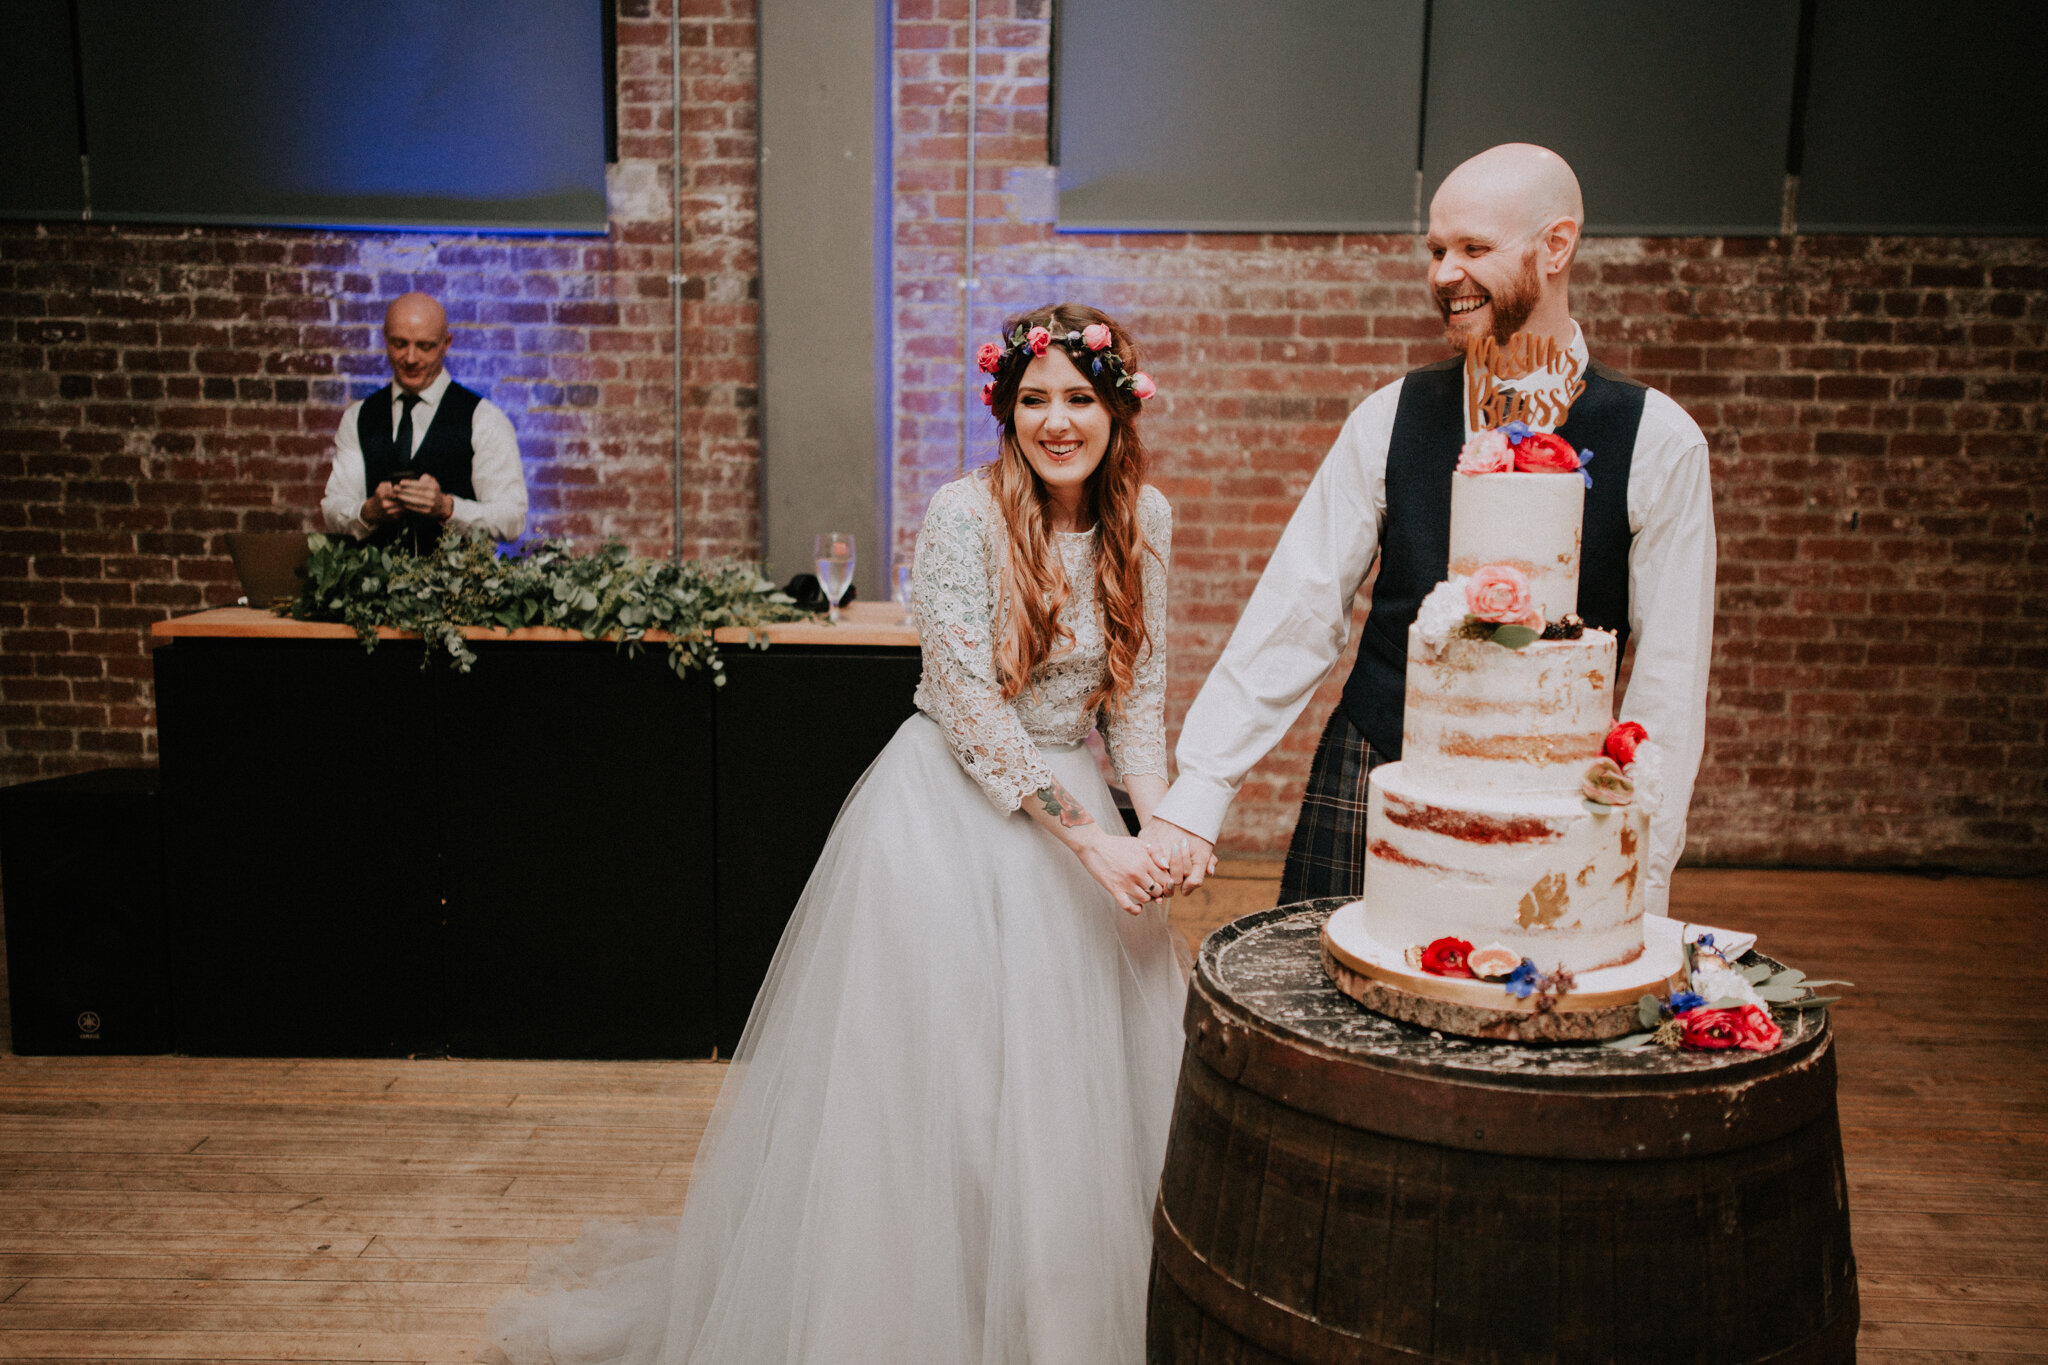 The couple on the evening reception ready to cut a naked cake